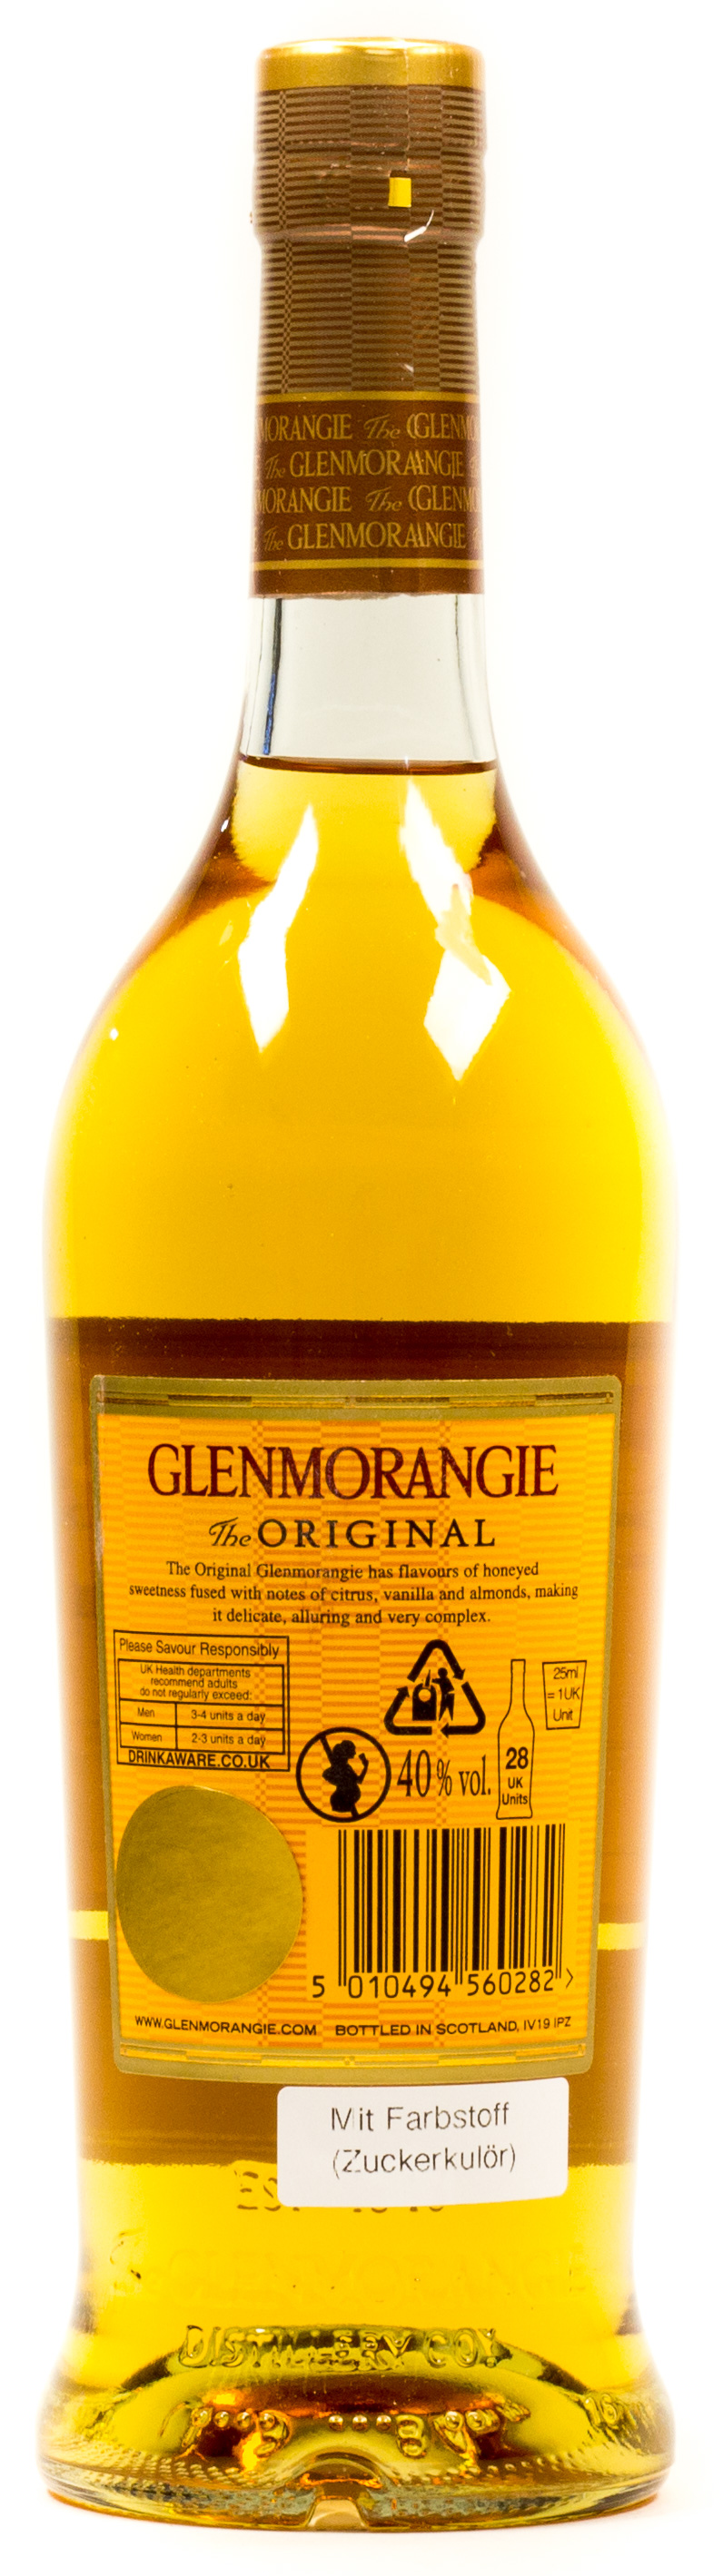 Glenmorangie Highland Single Malt Scotch Whisky 10 years 0,7 l